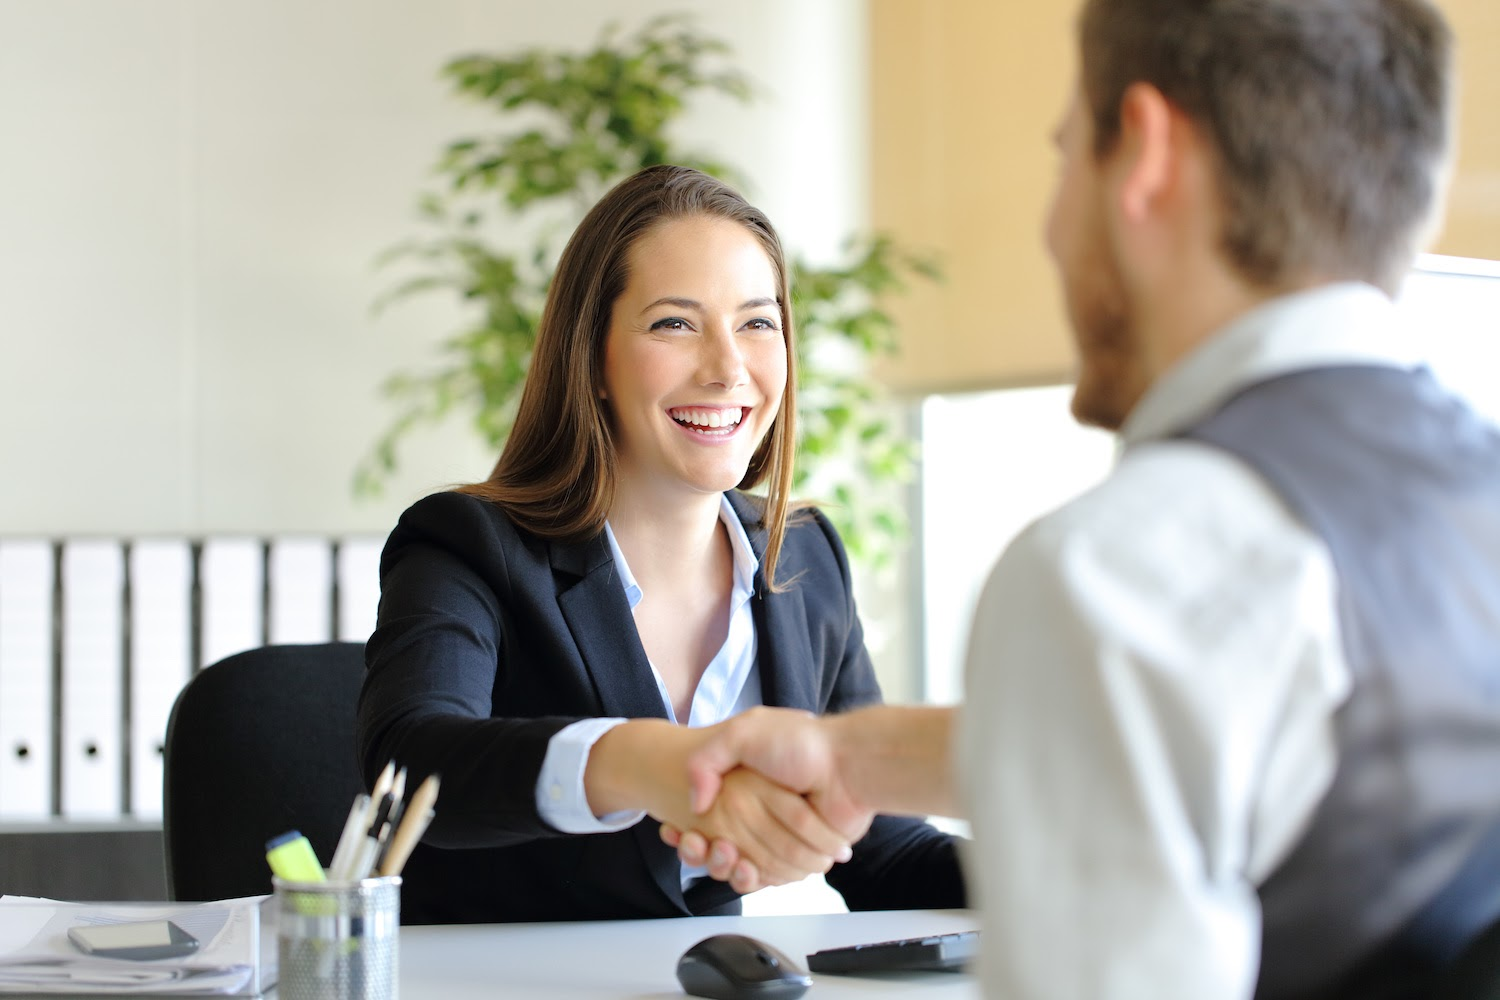 Types of interviews: Woman shakes hands with man